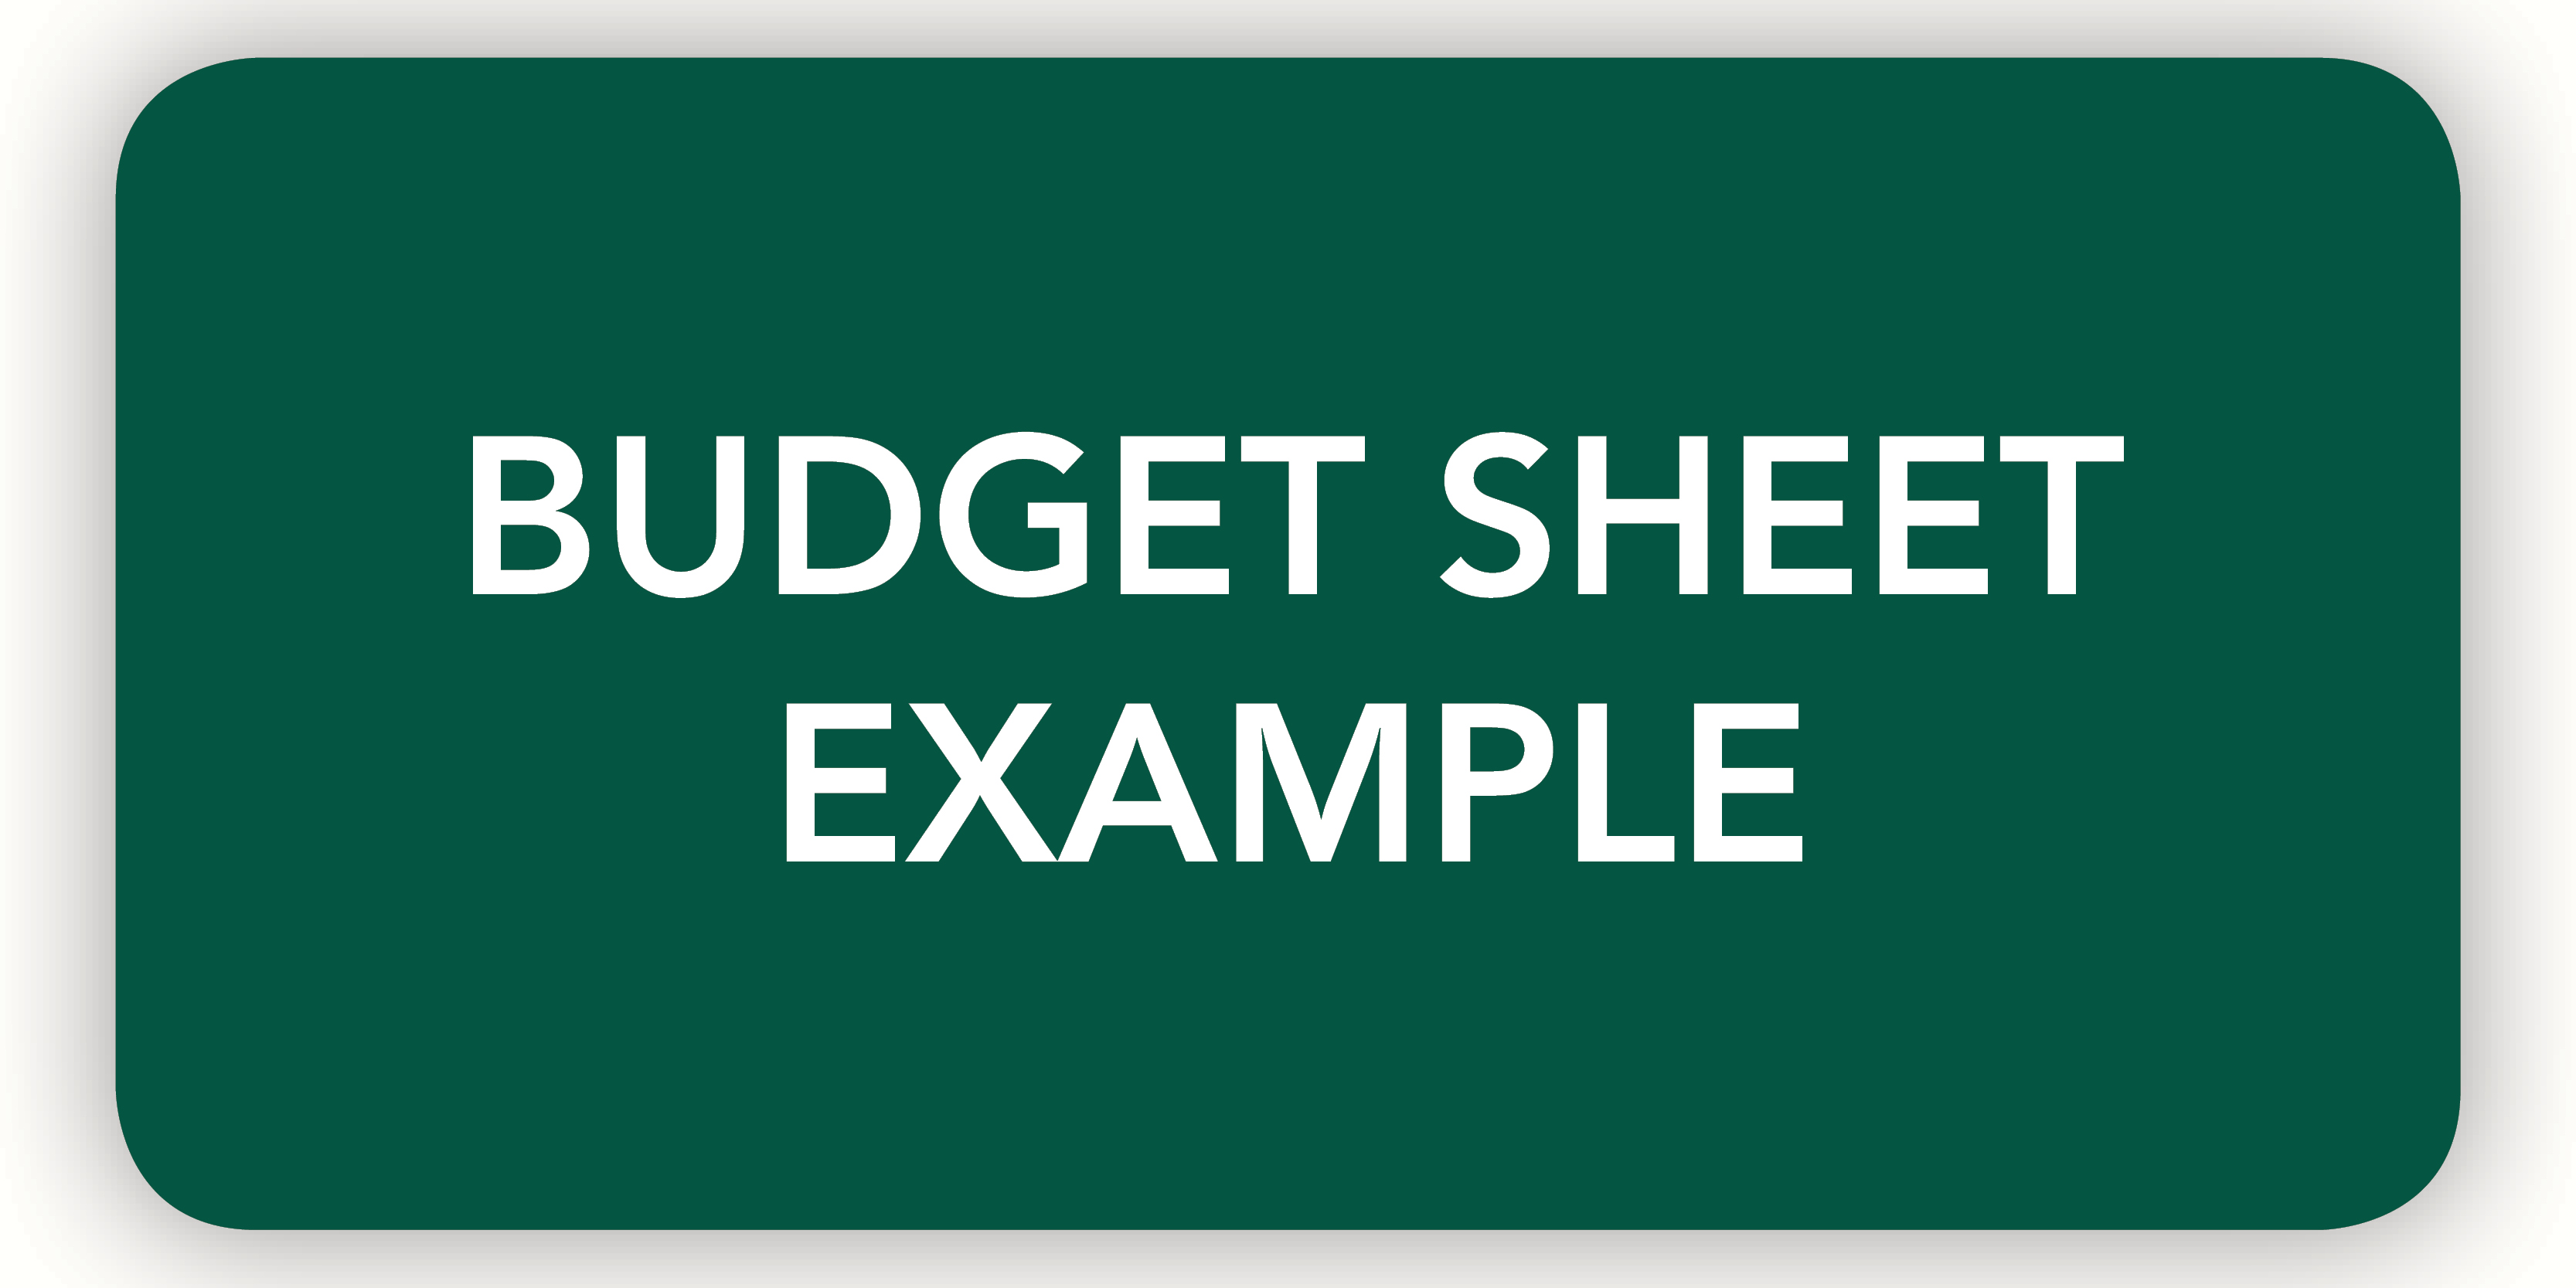 Budget sheet example